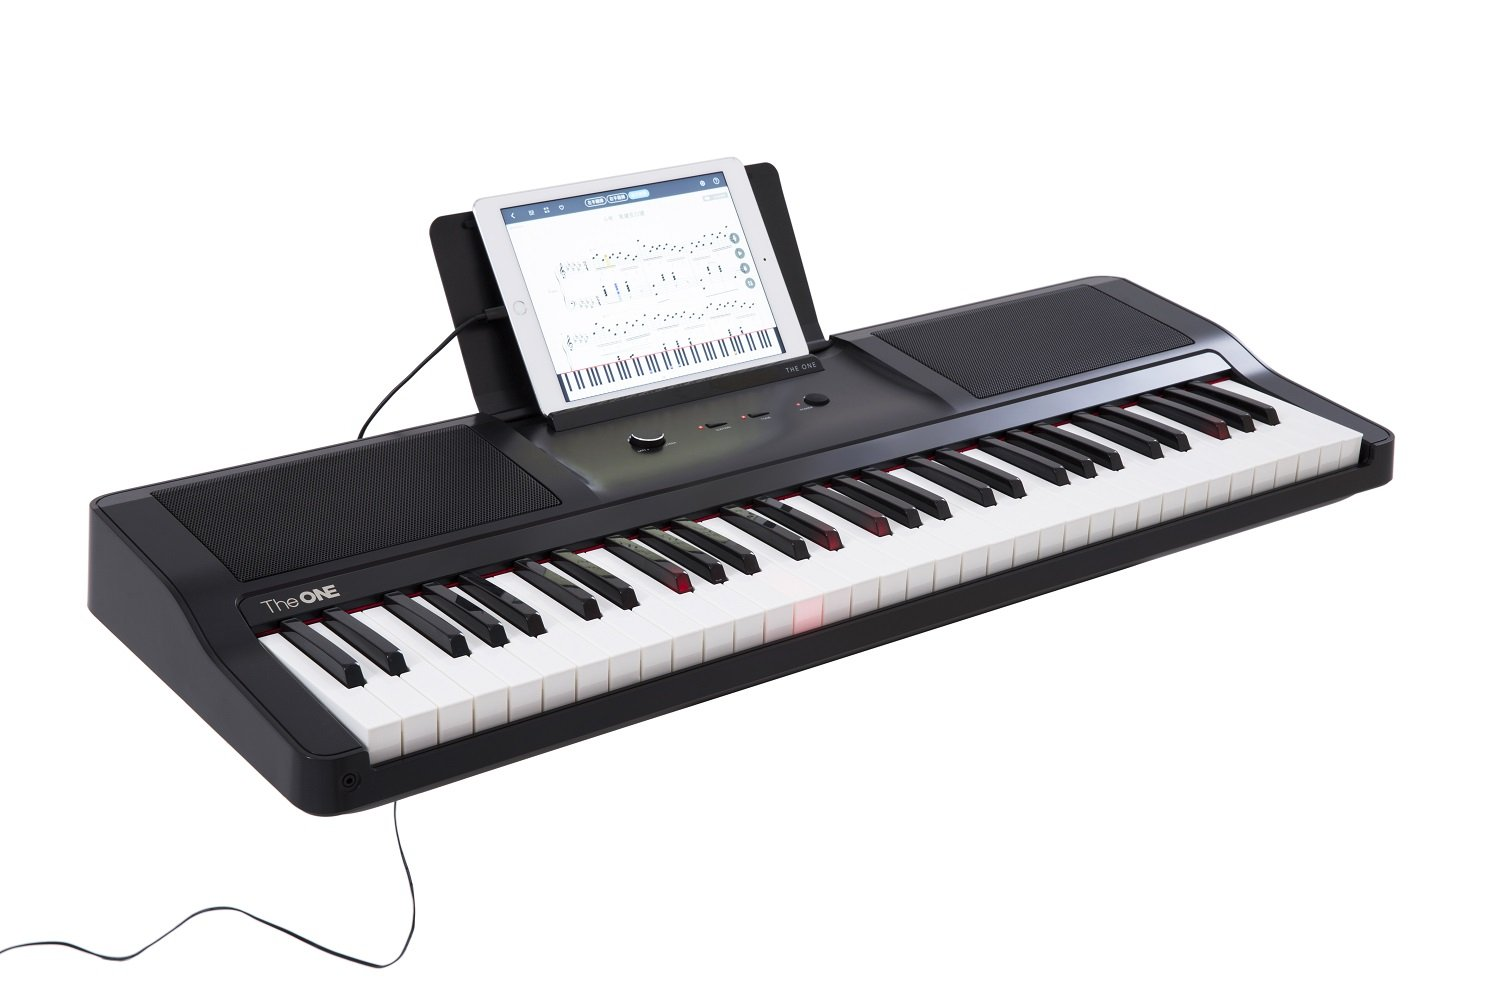 Smart Piano Keyboard 61-Key Portable Light Keyboard,Electronic Keyboard Digital Piano Music LED,Great for Beginner-Kids/Adults Learing/Training (Black)